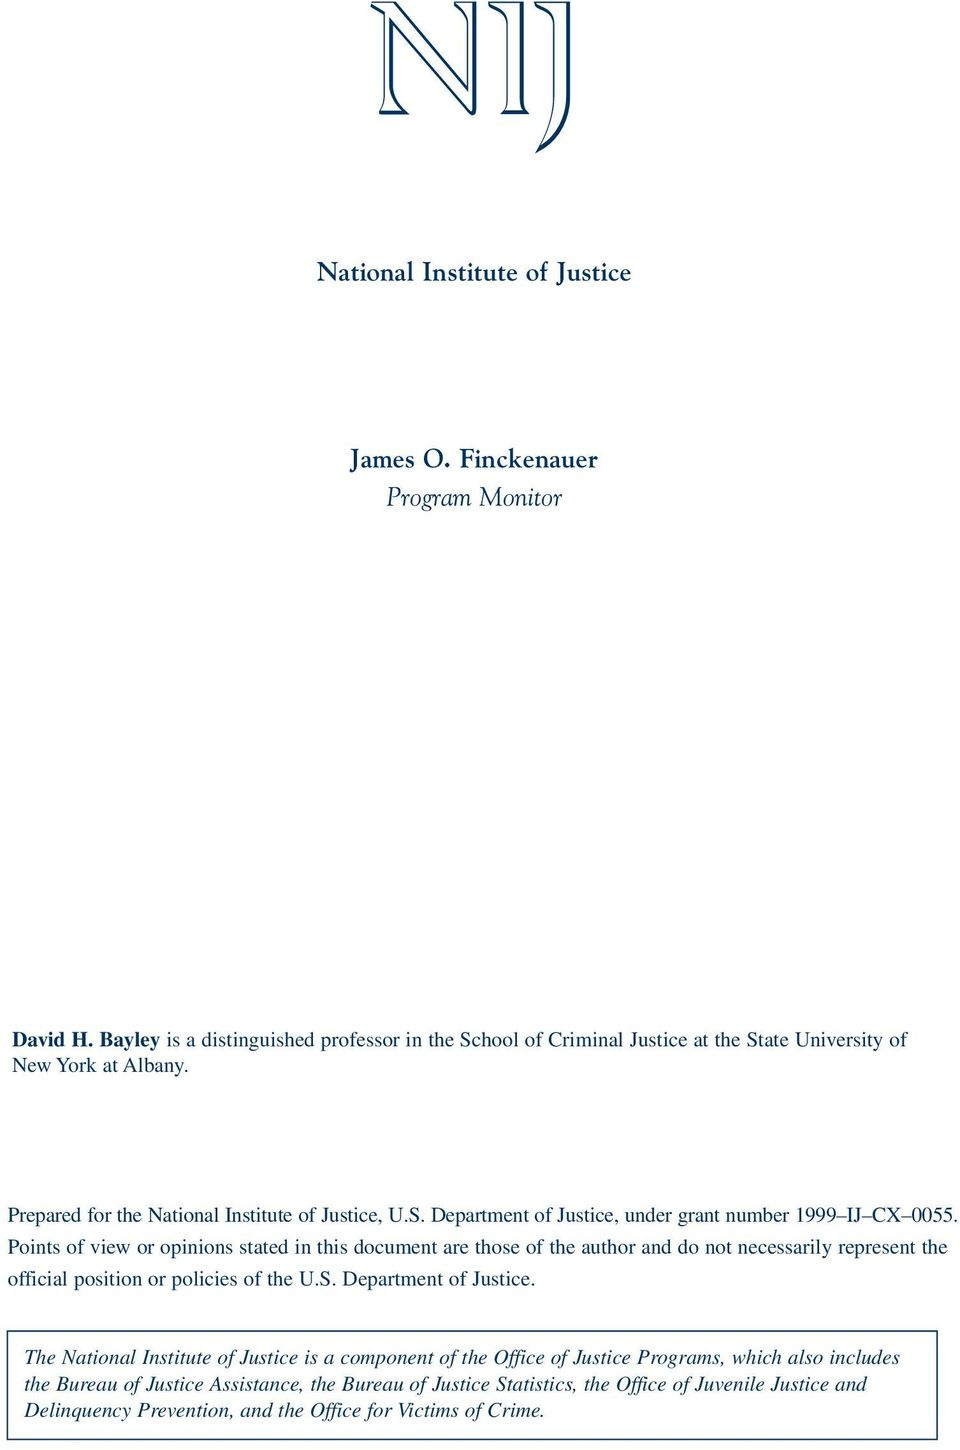 Points of view or opinions stated in this document are those of the author and do not necessarily represent the official position or policies of the U.S. Department of Justice.